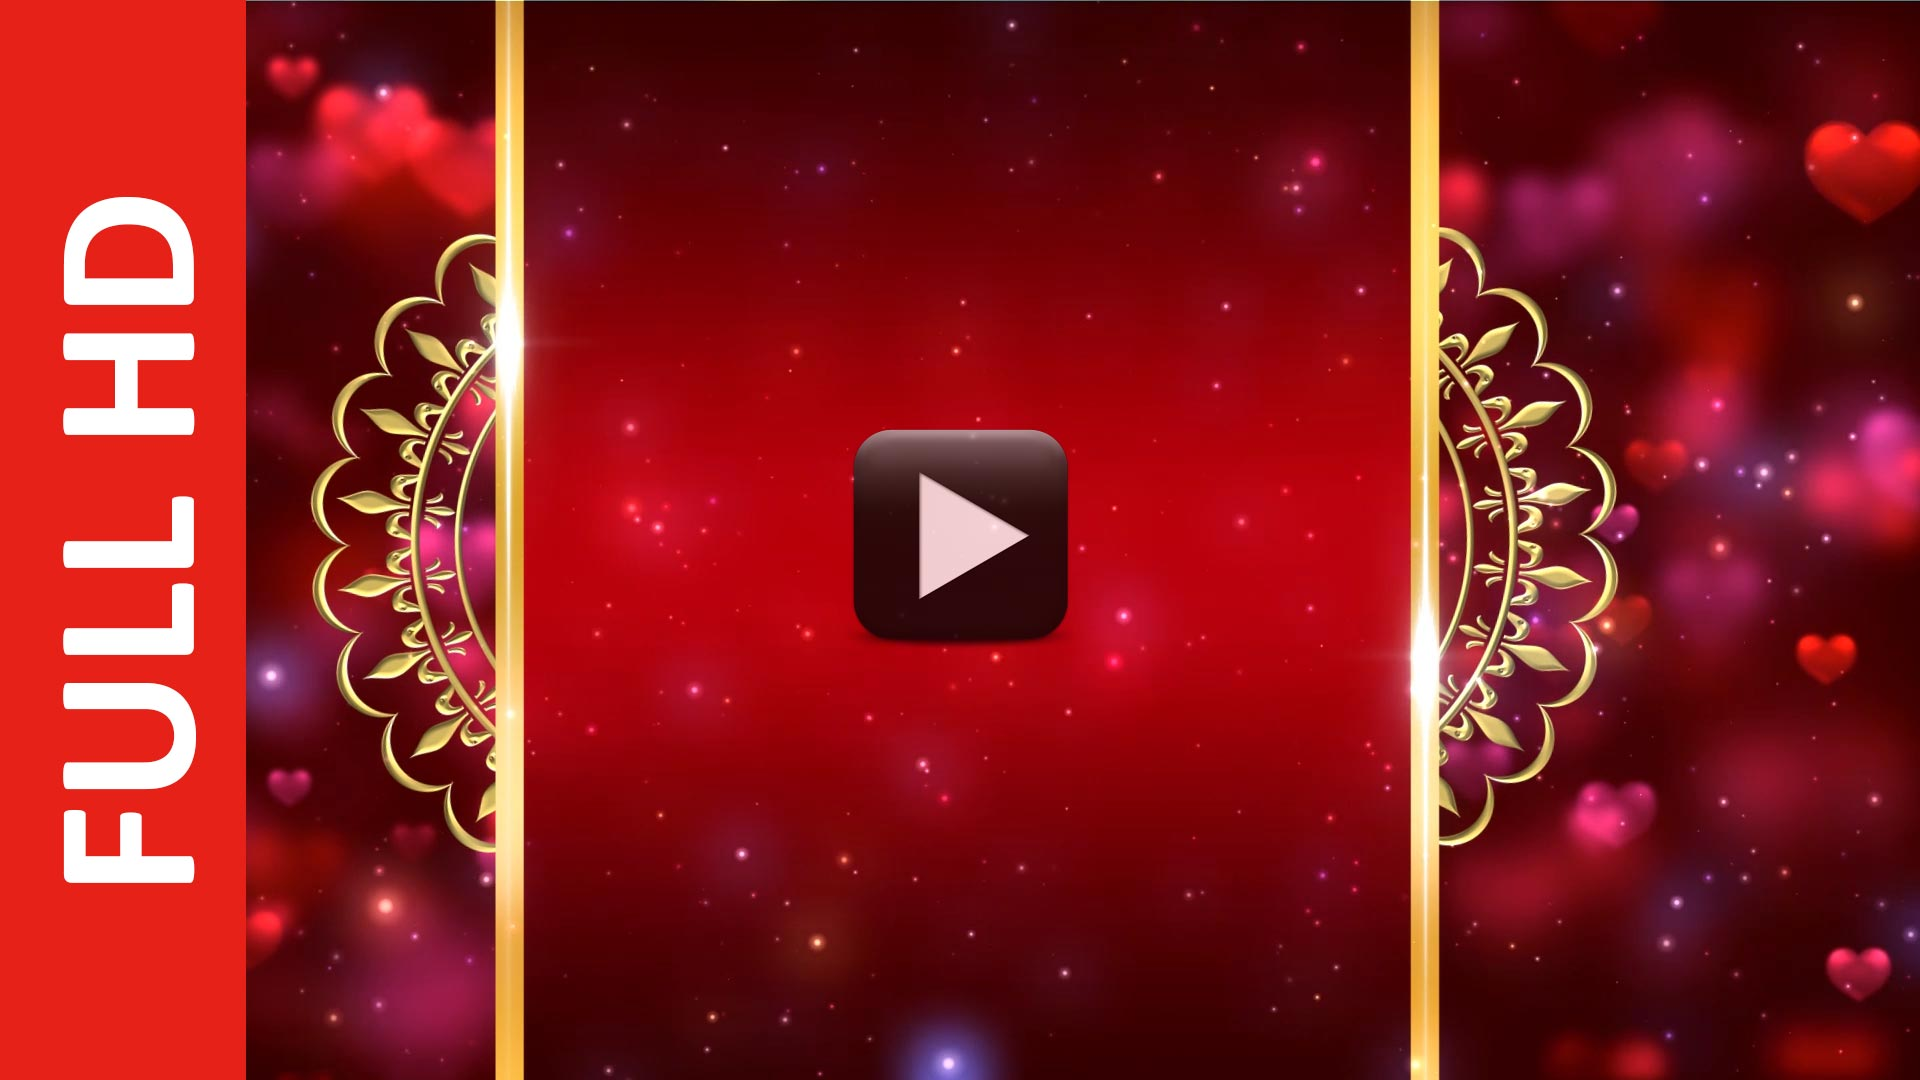 Royal Intro Title Wedding Invitation Background Video Effects HD ...